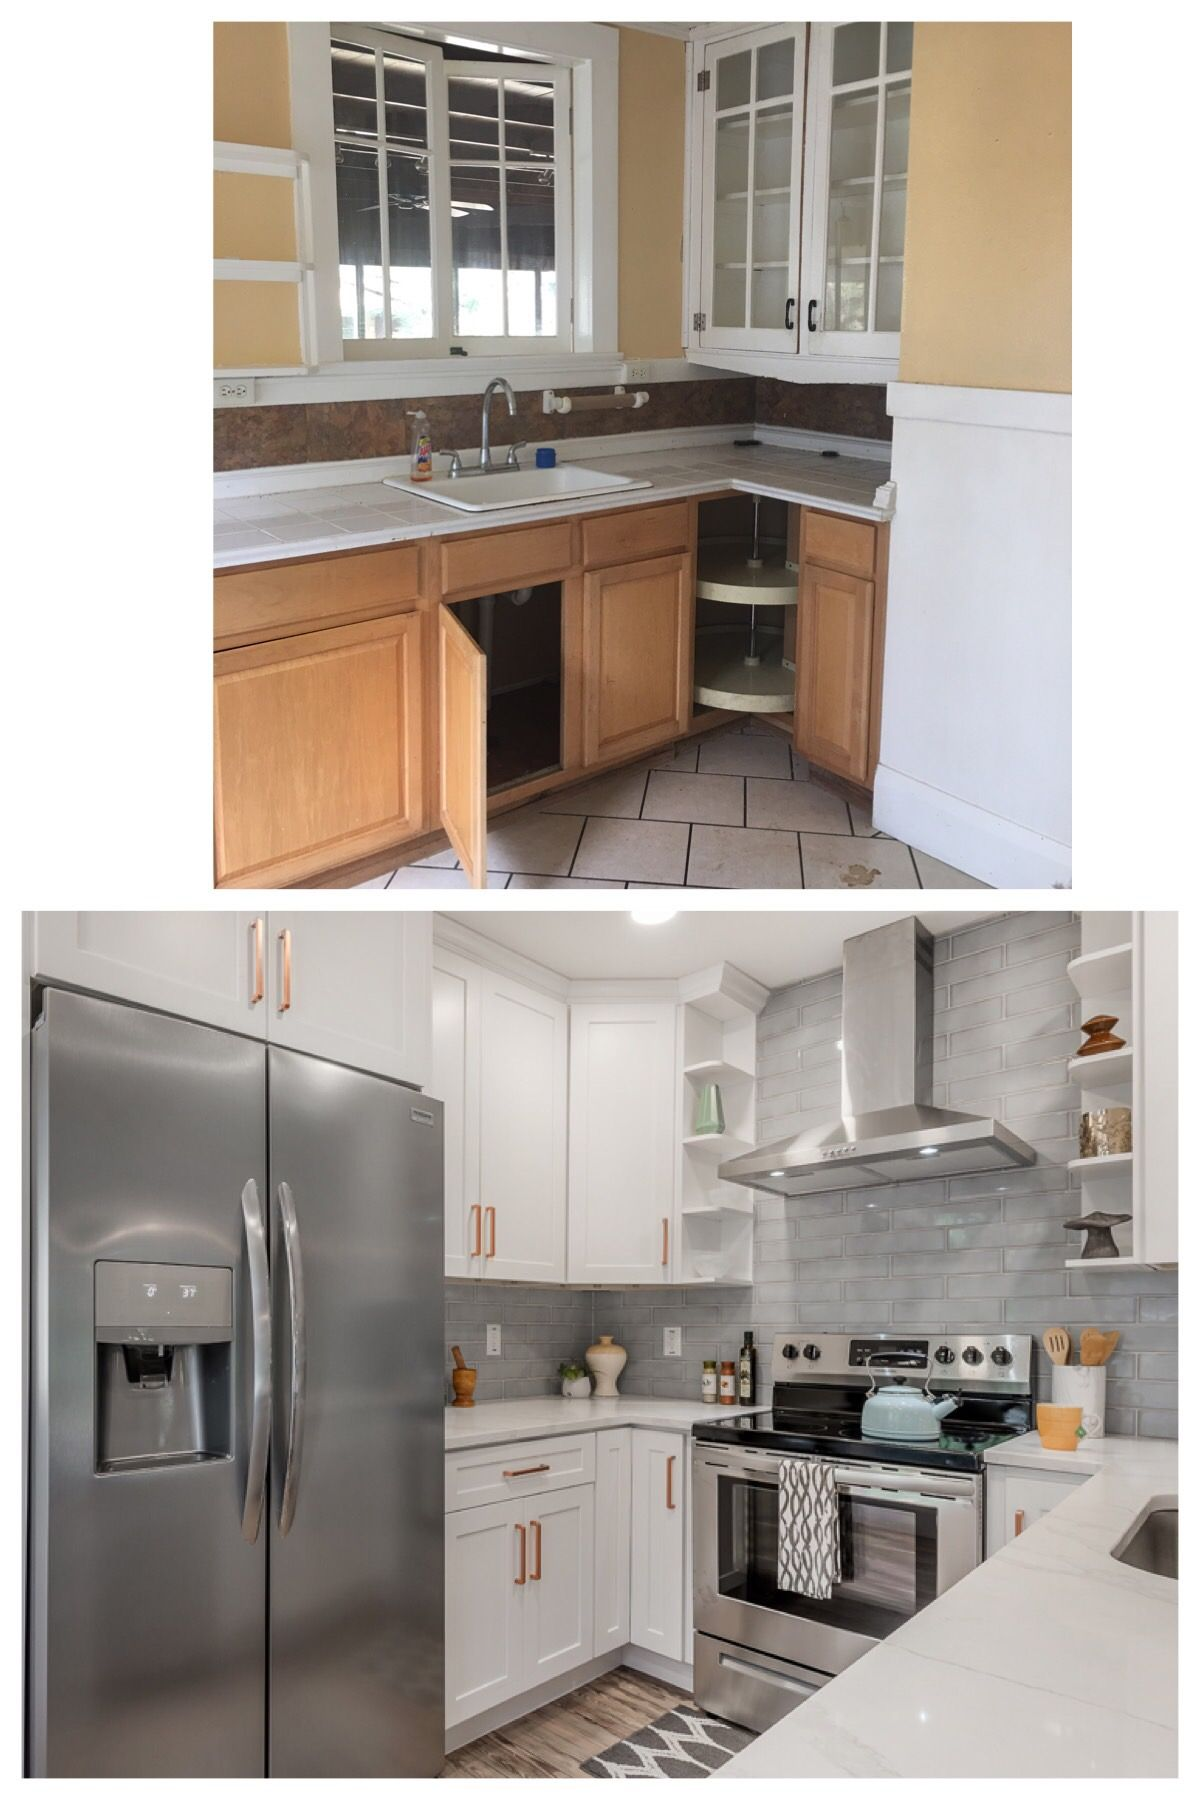 small kitchen remodel - 1920's bungalow remodel in